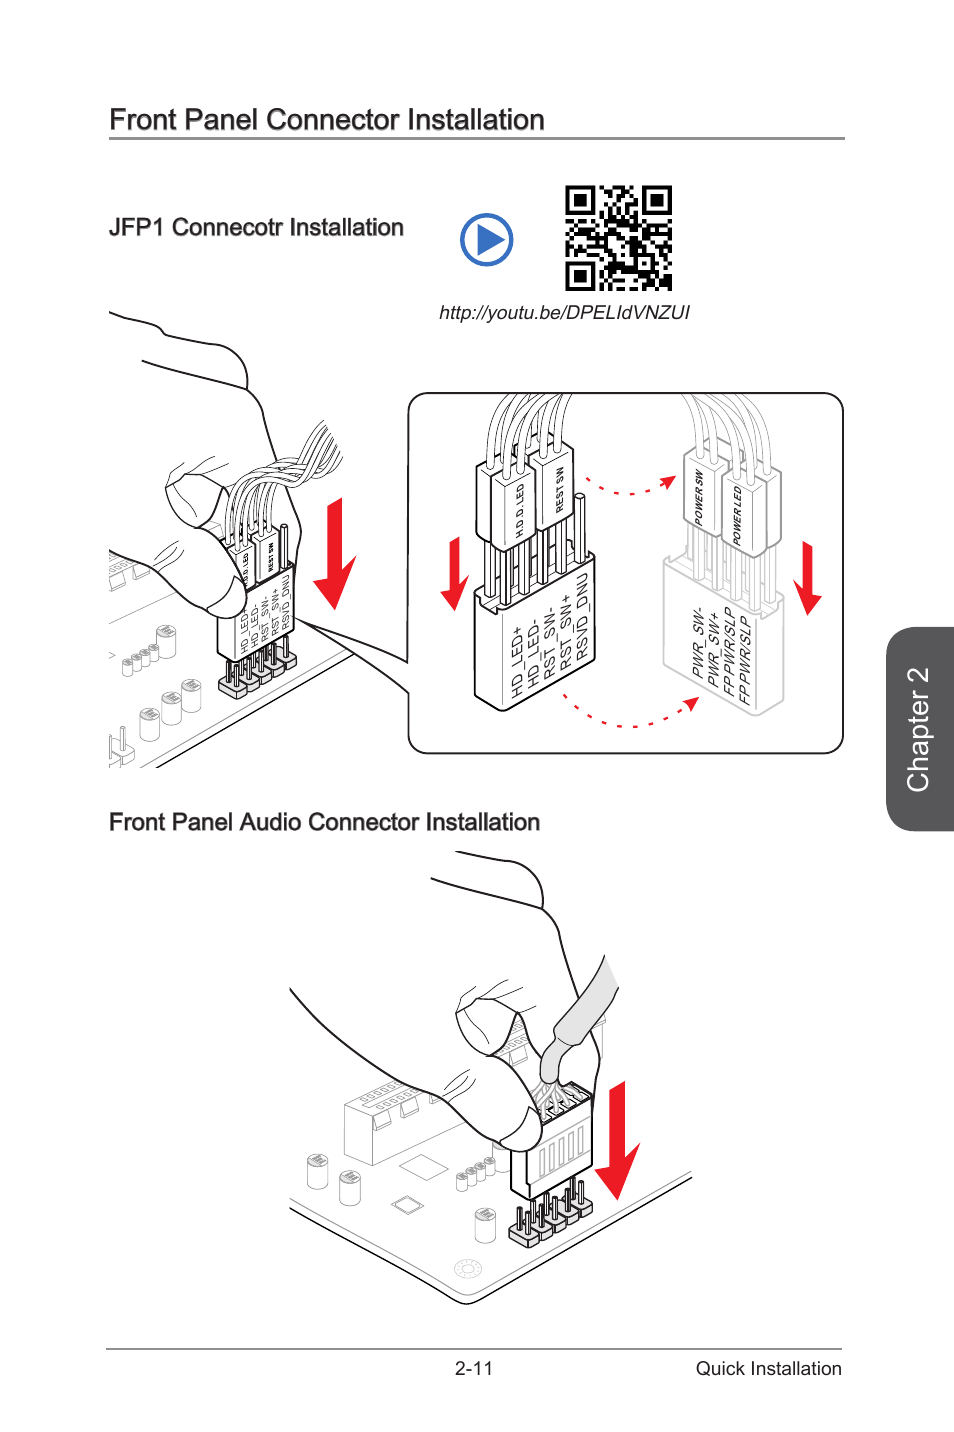 front panel connector installation  jfp1 connecotr